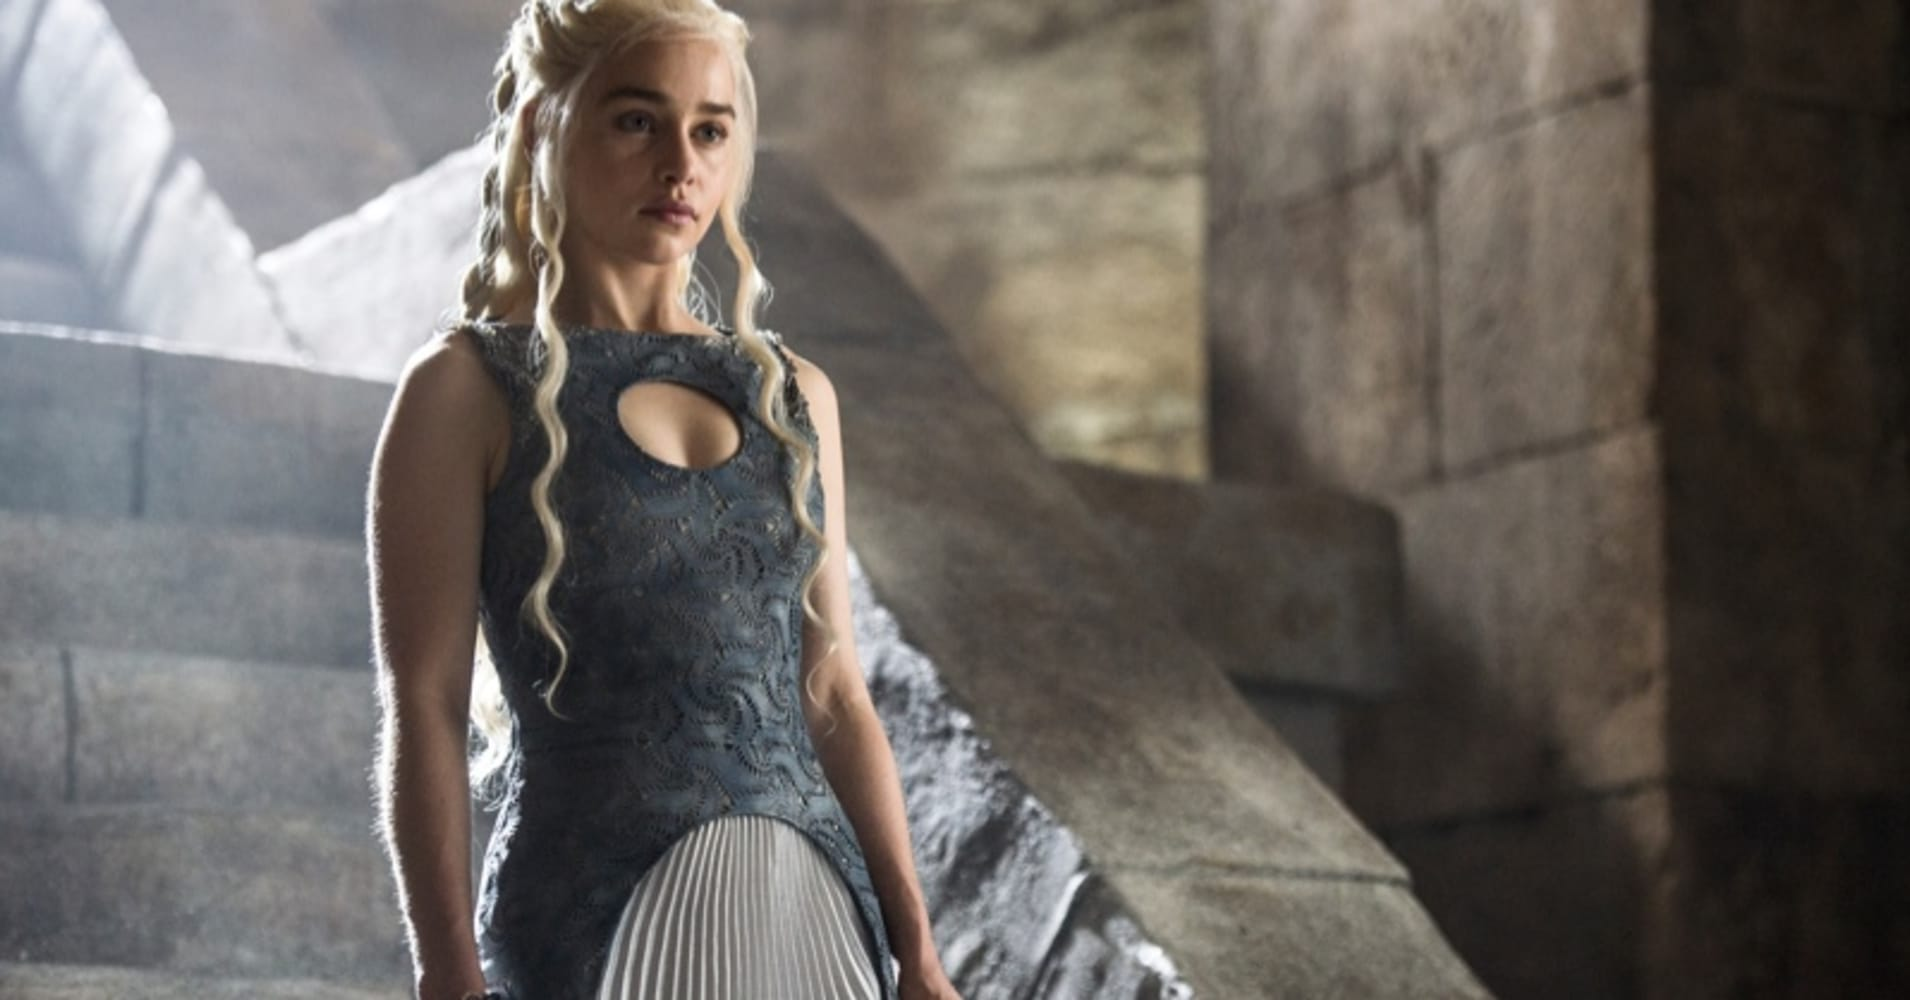 If you are a 'Game of Thrones' fan, this app will teach you how to speak in High Valyrian